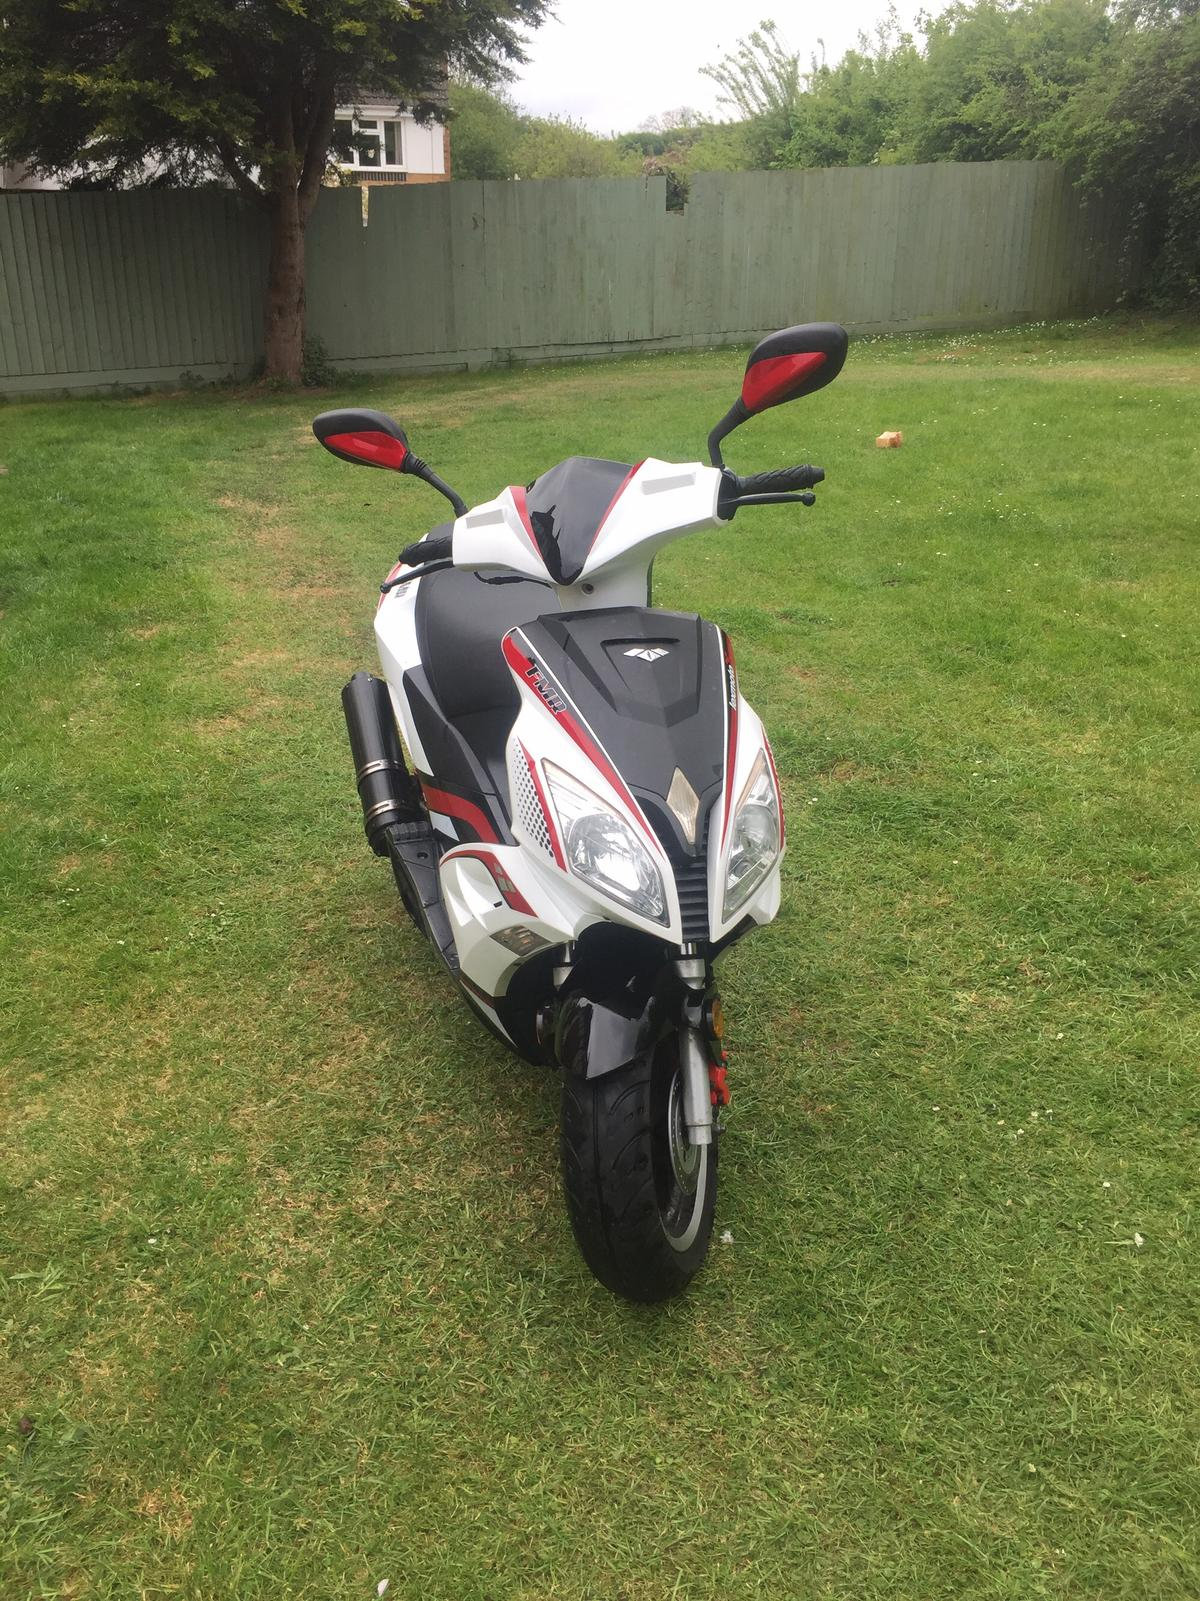 Lexmoto fmr 125 moped/scooter in BS15 Green for £675 00 for sale